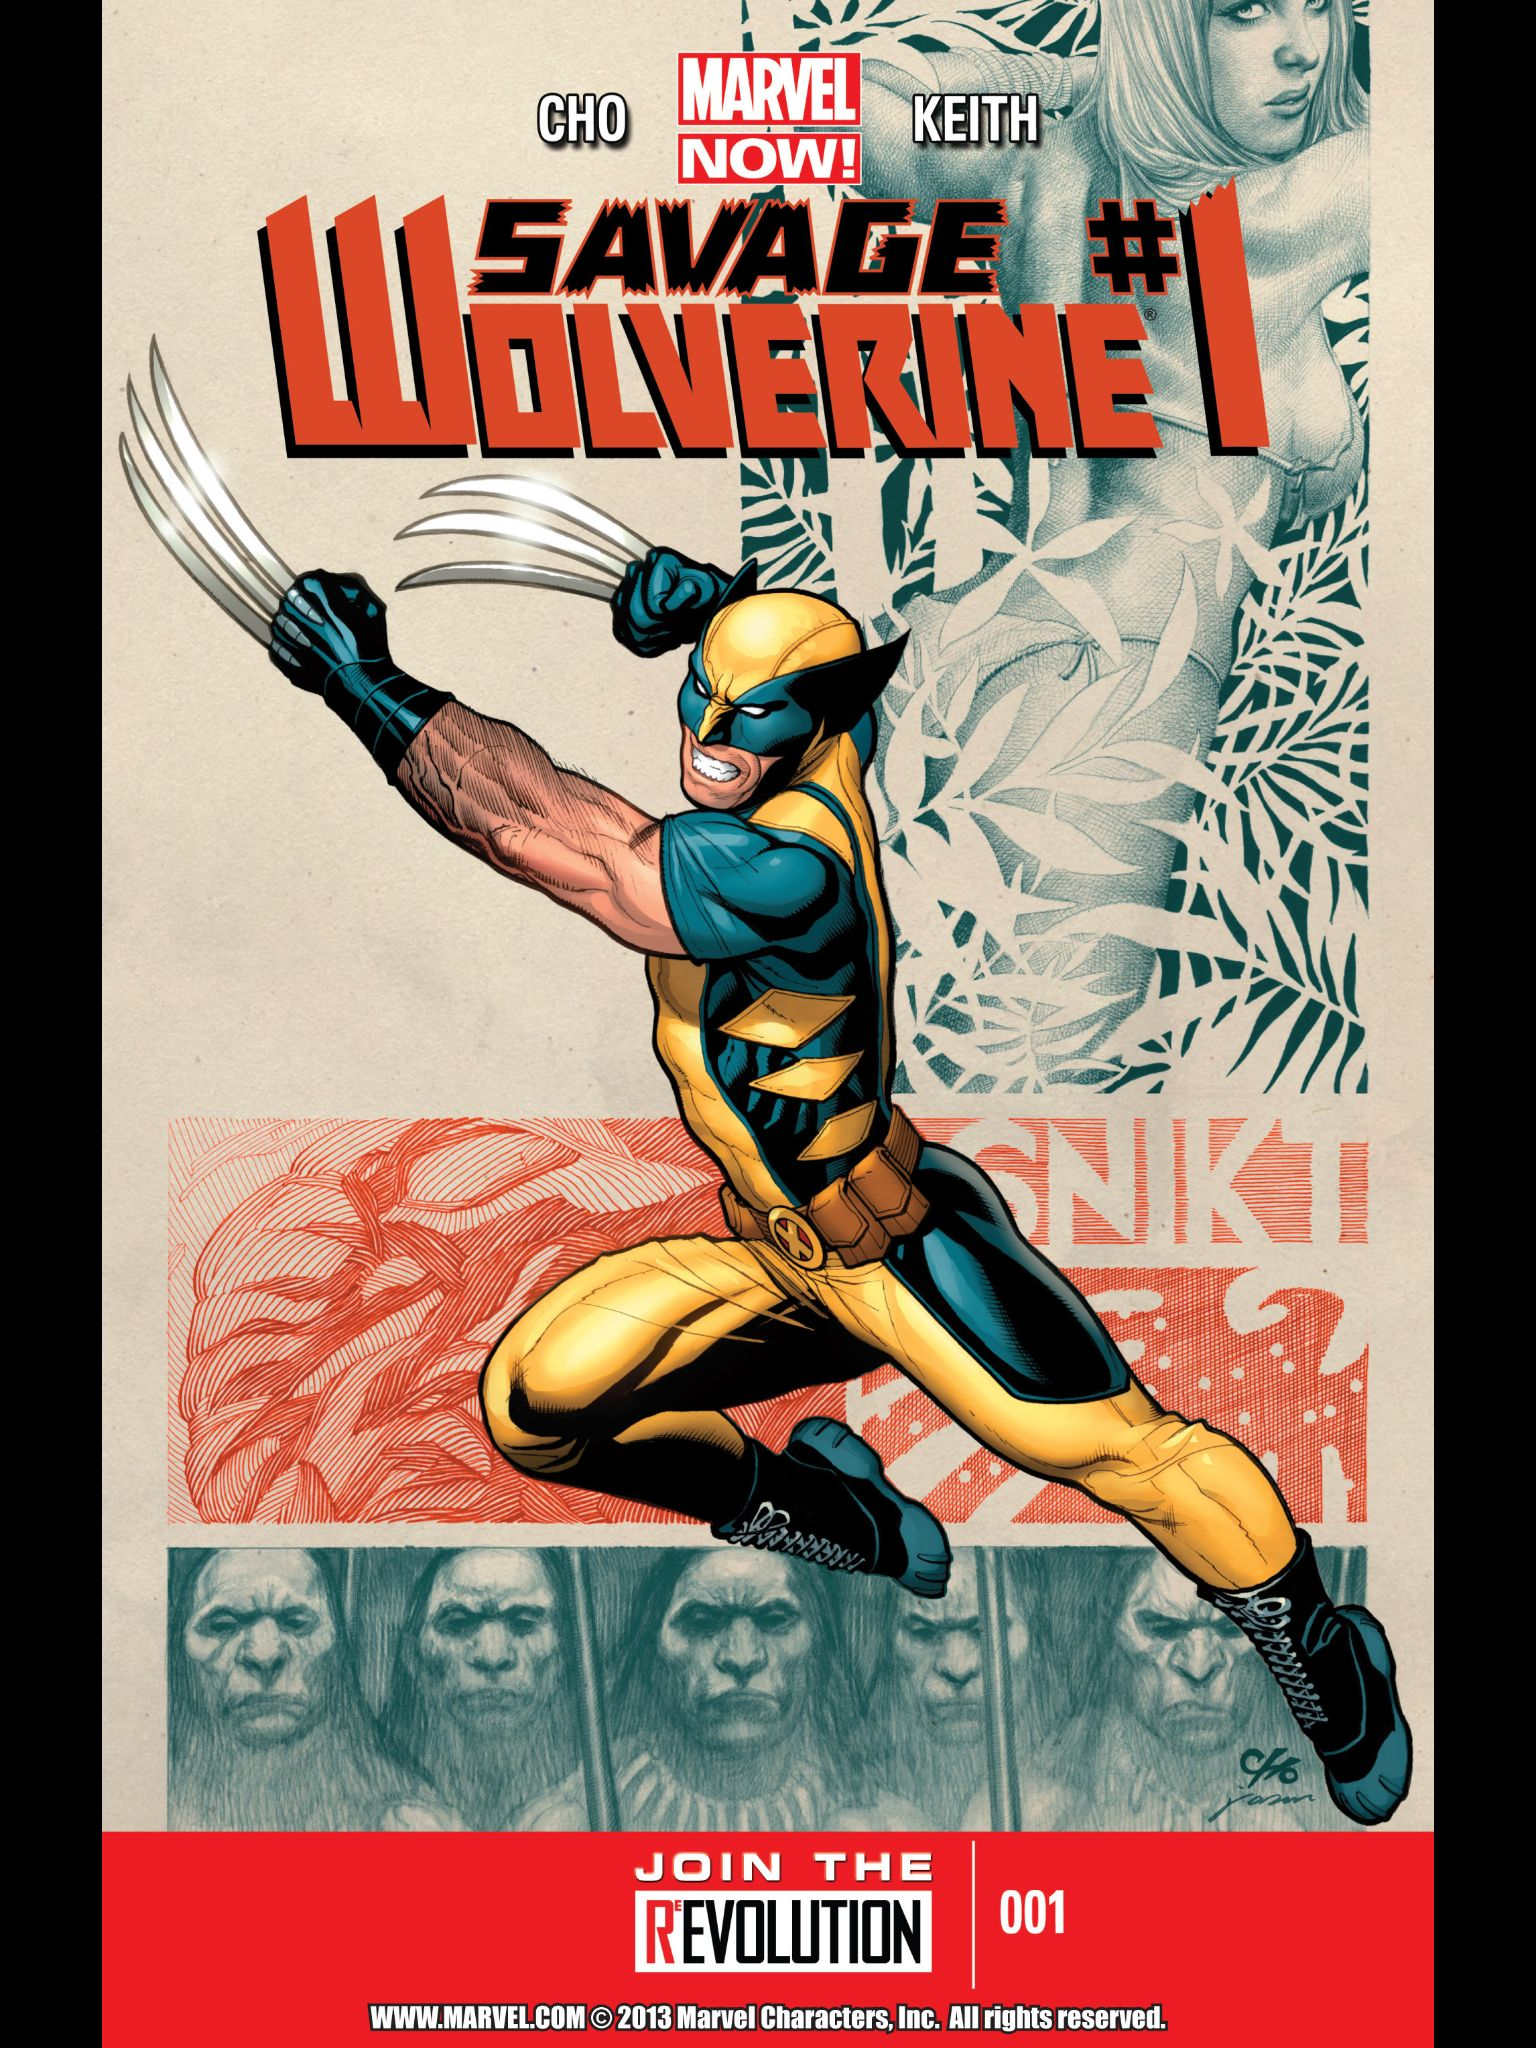 2013 MARVEL NOW! SAVAGE WOLVERINE #1 ART /& COVER FRANK CHO STORY